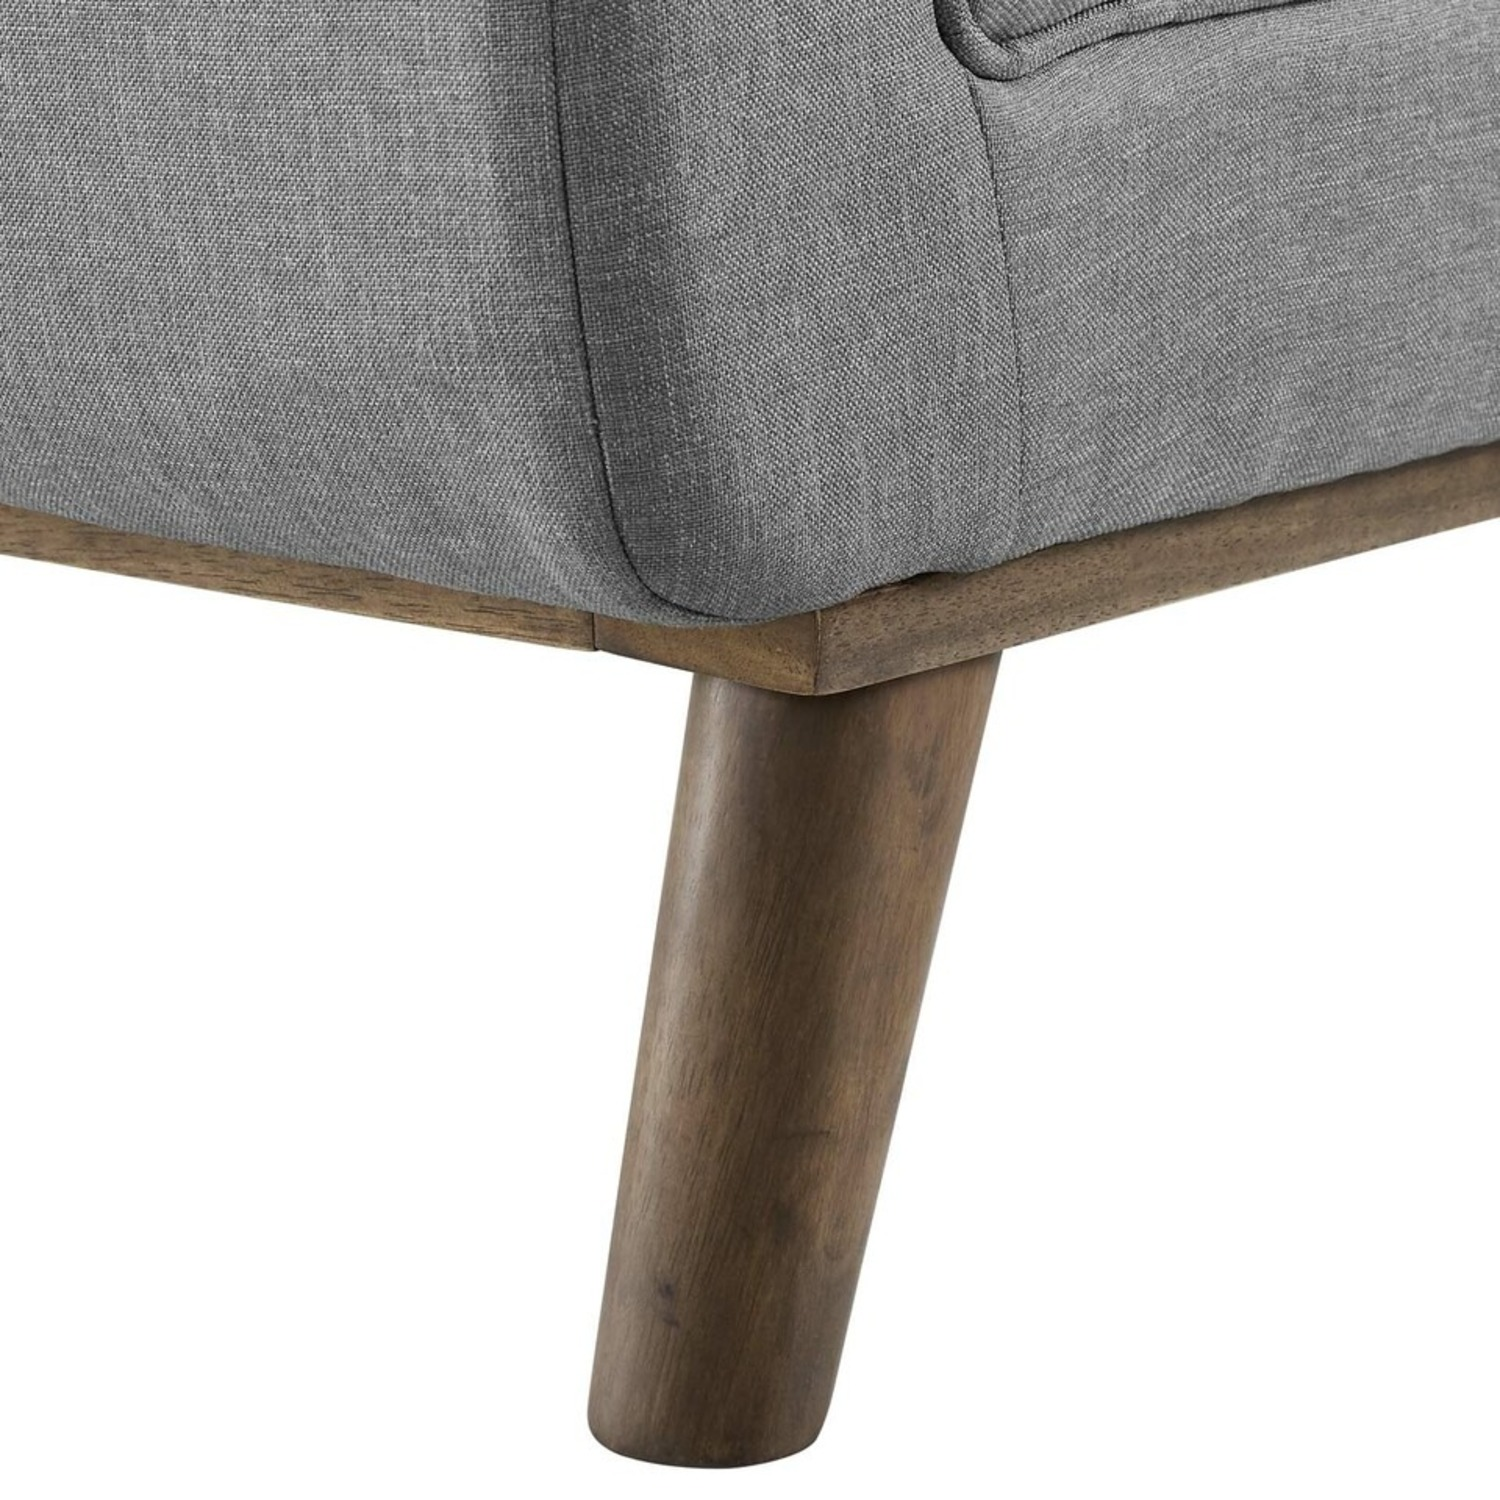 Accent Bench In Tufted Light Gray Fabric Finish - image-4